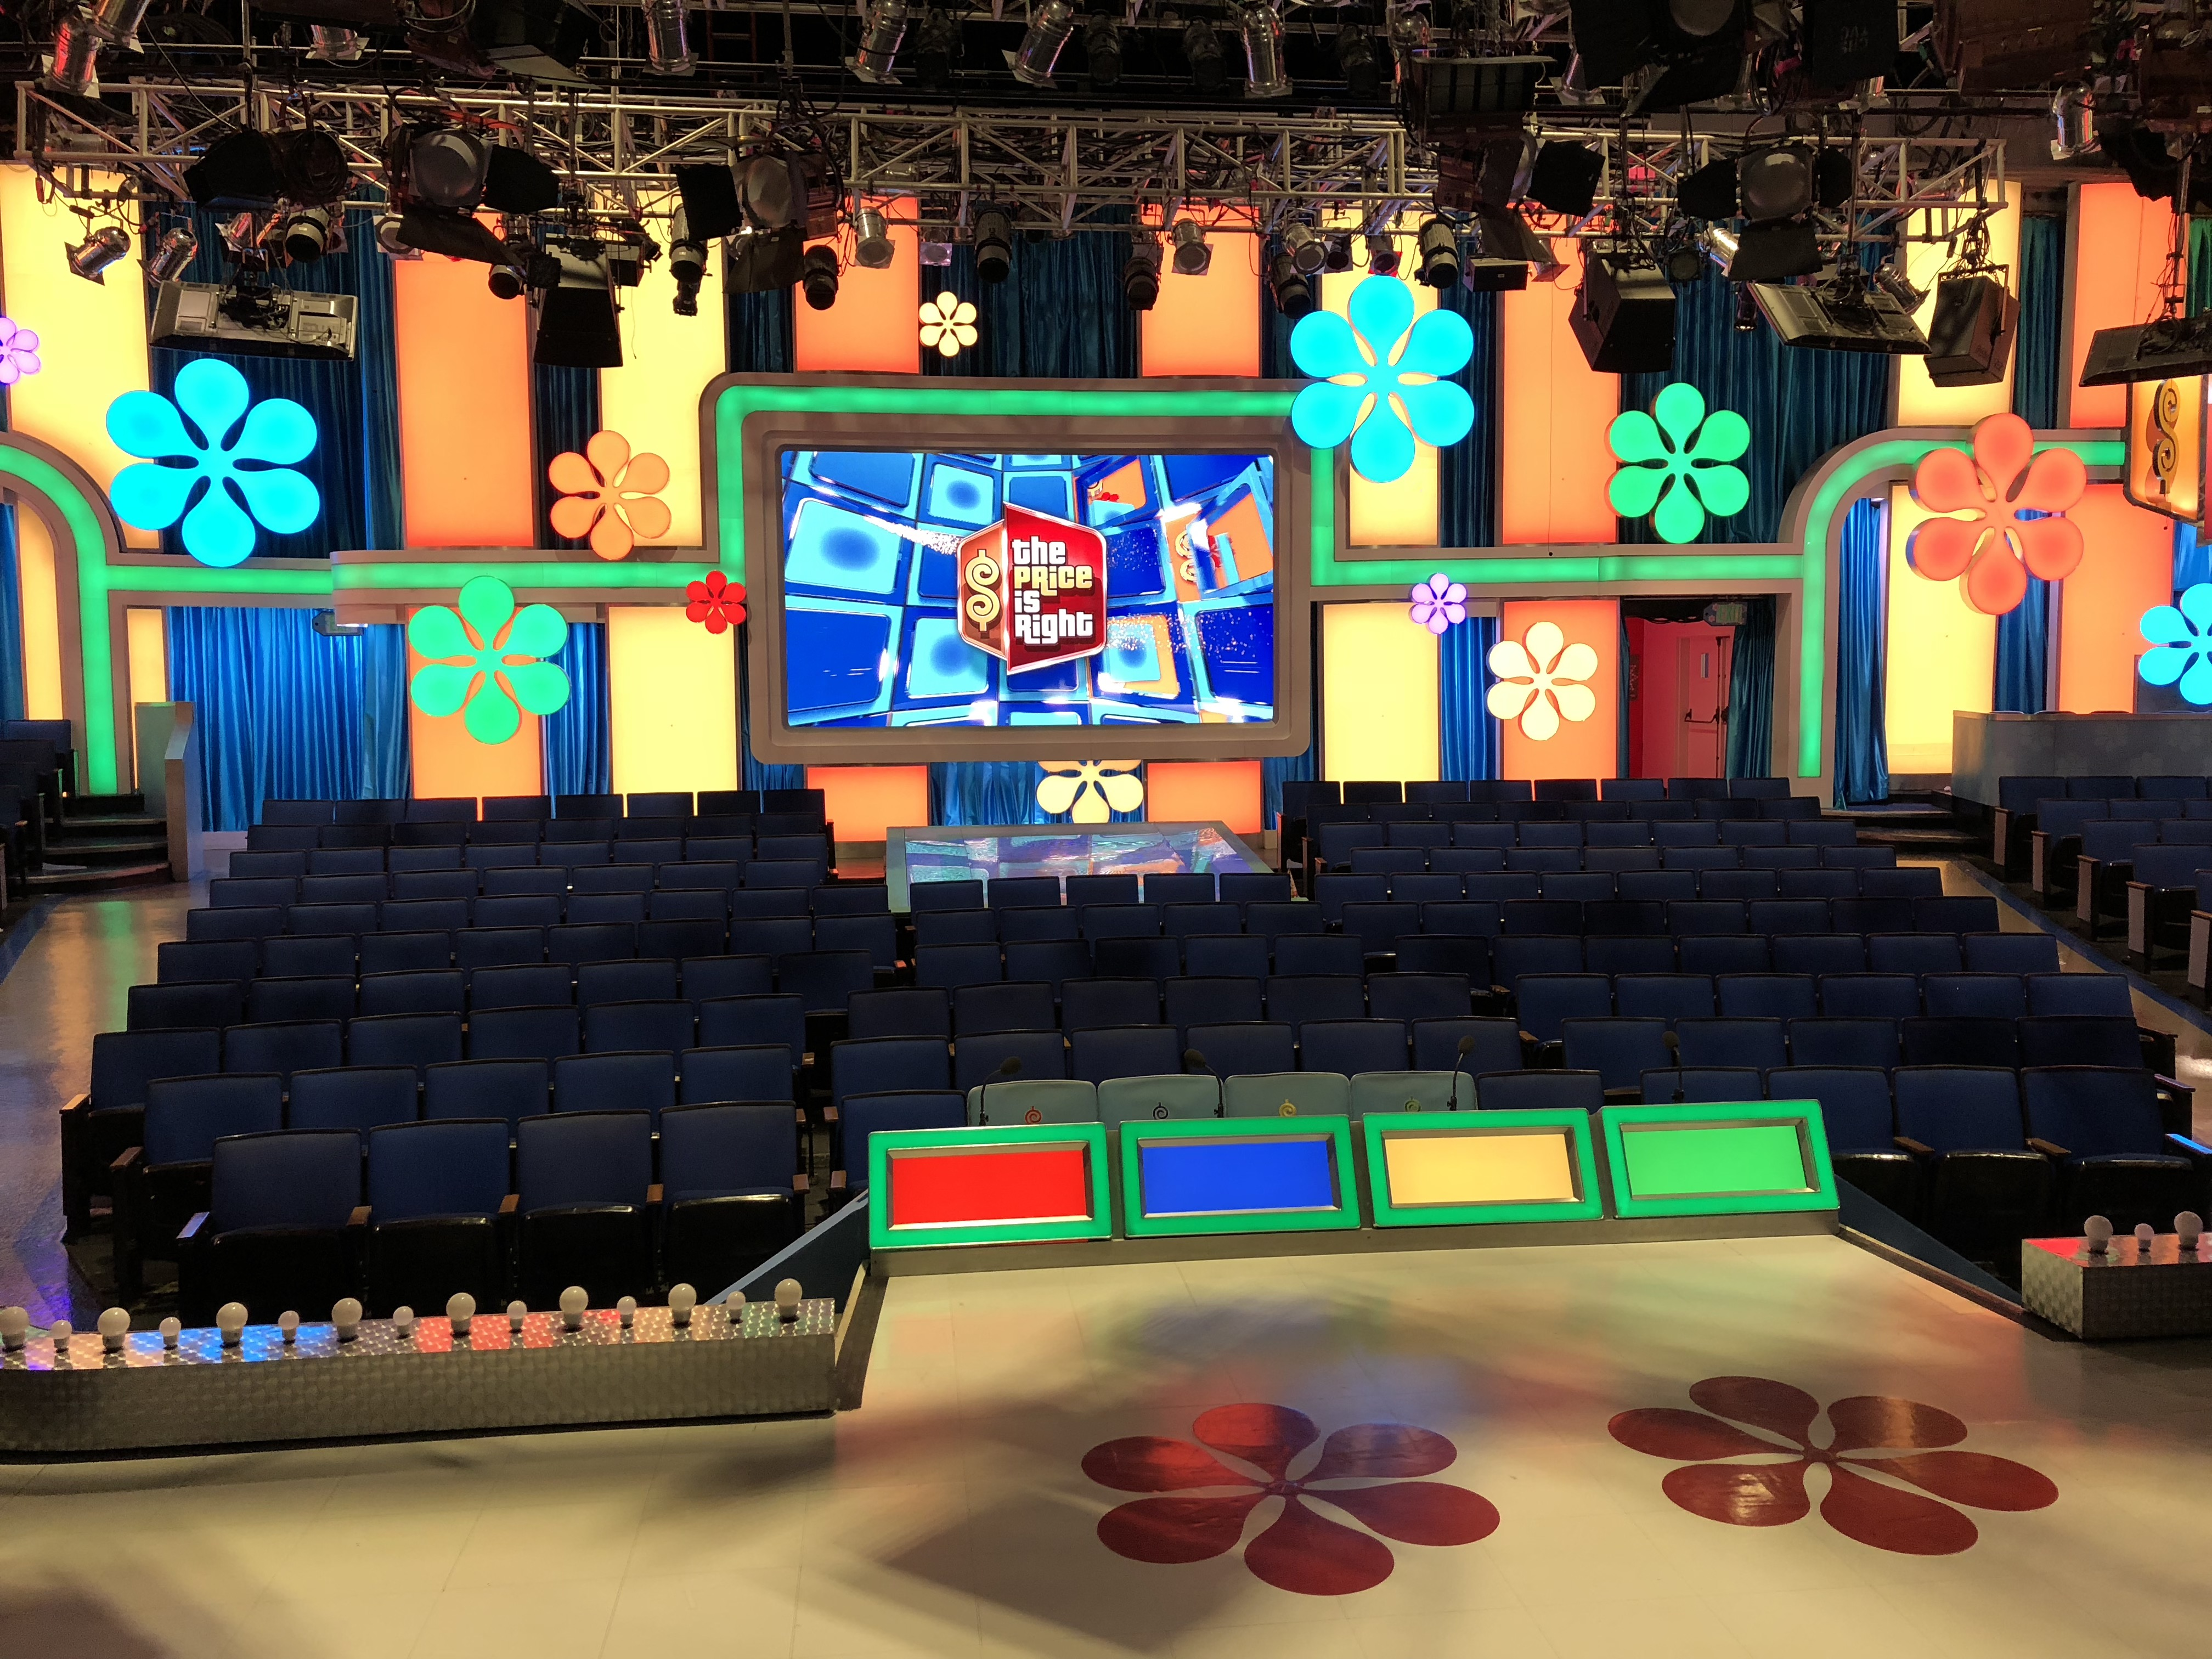 the view from the stage at The Price is Right